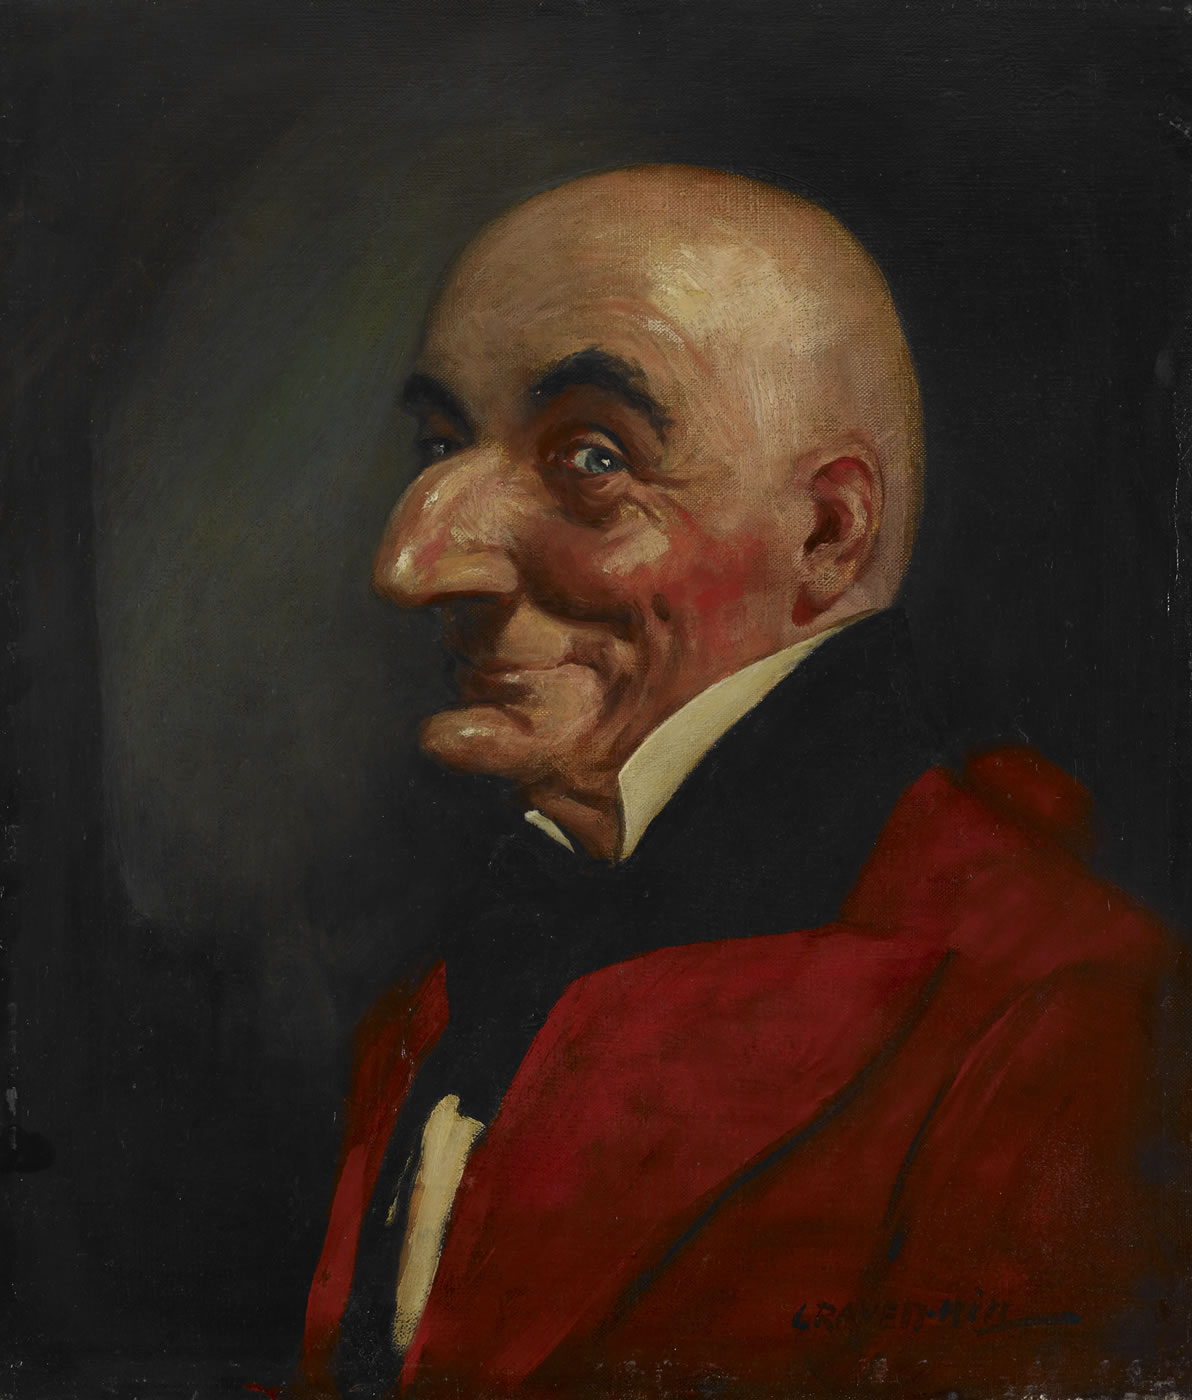 Mr Punch, Leonard Raven-Hill, early 20th century